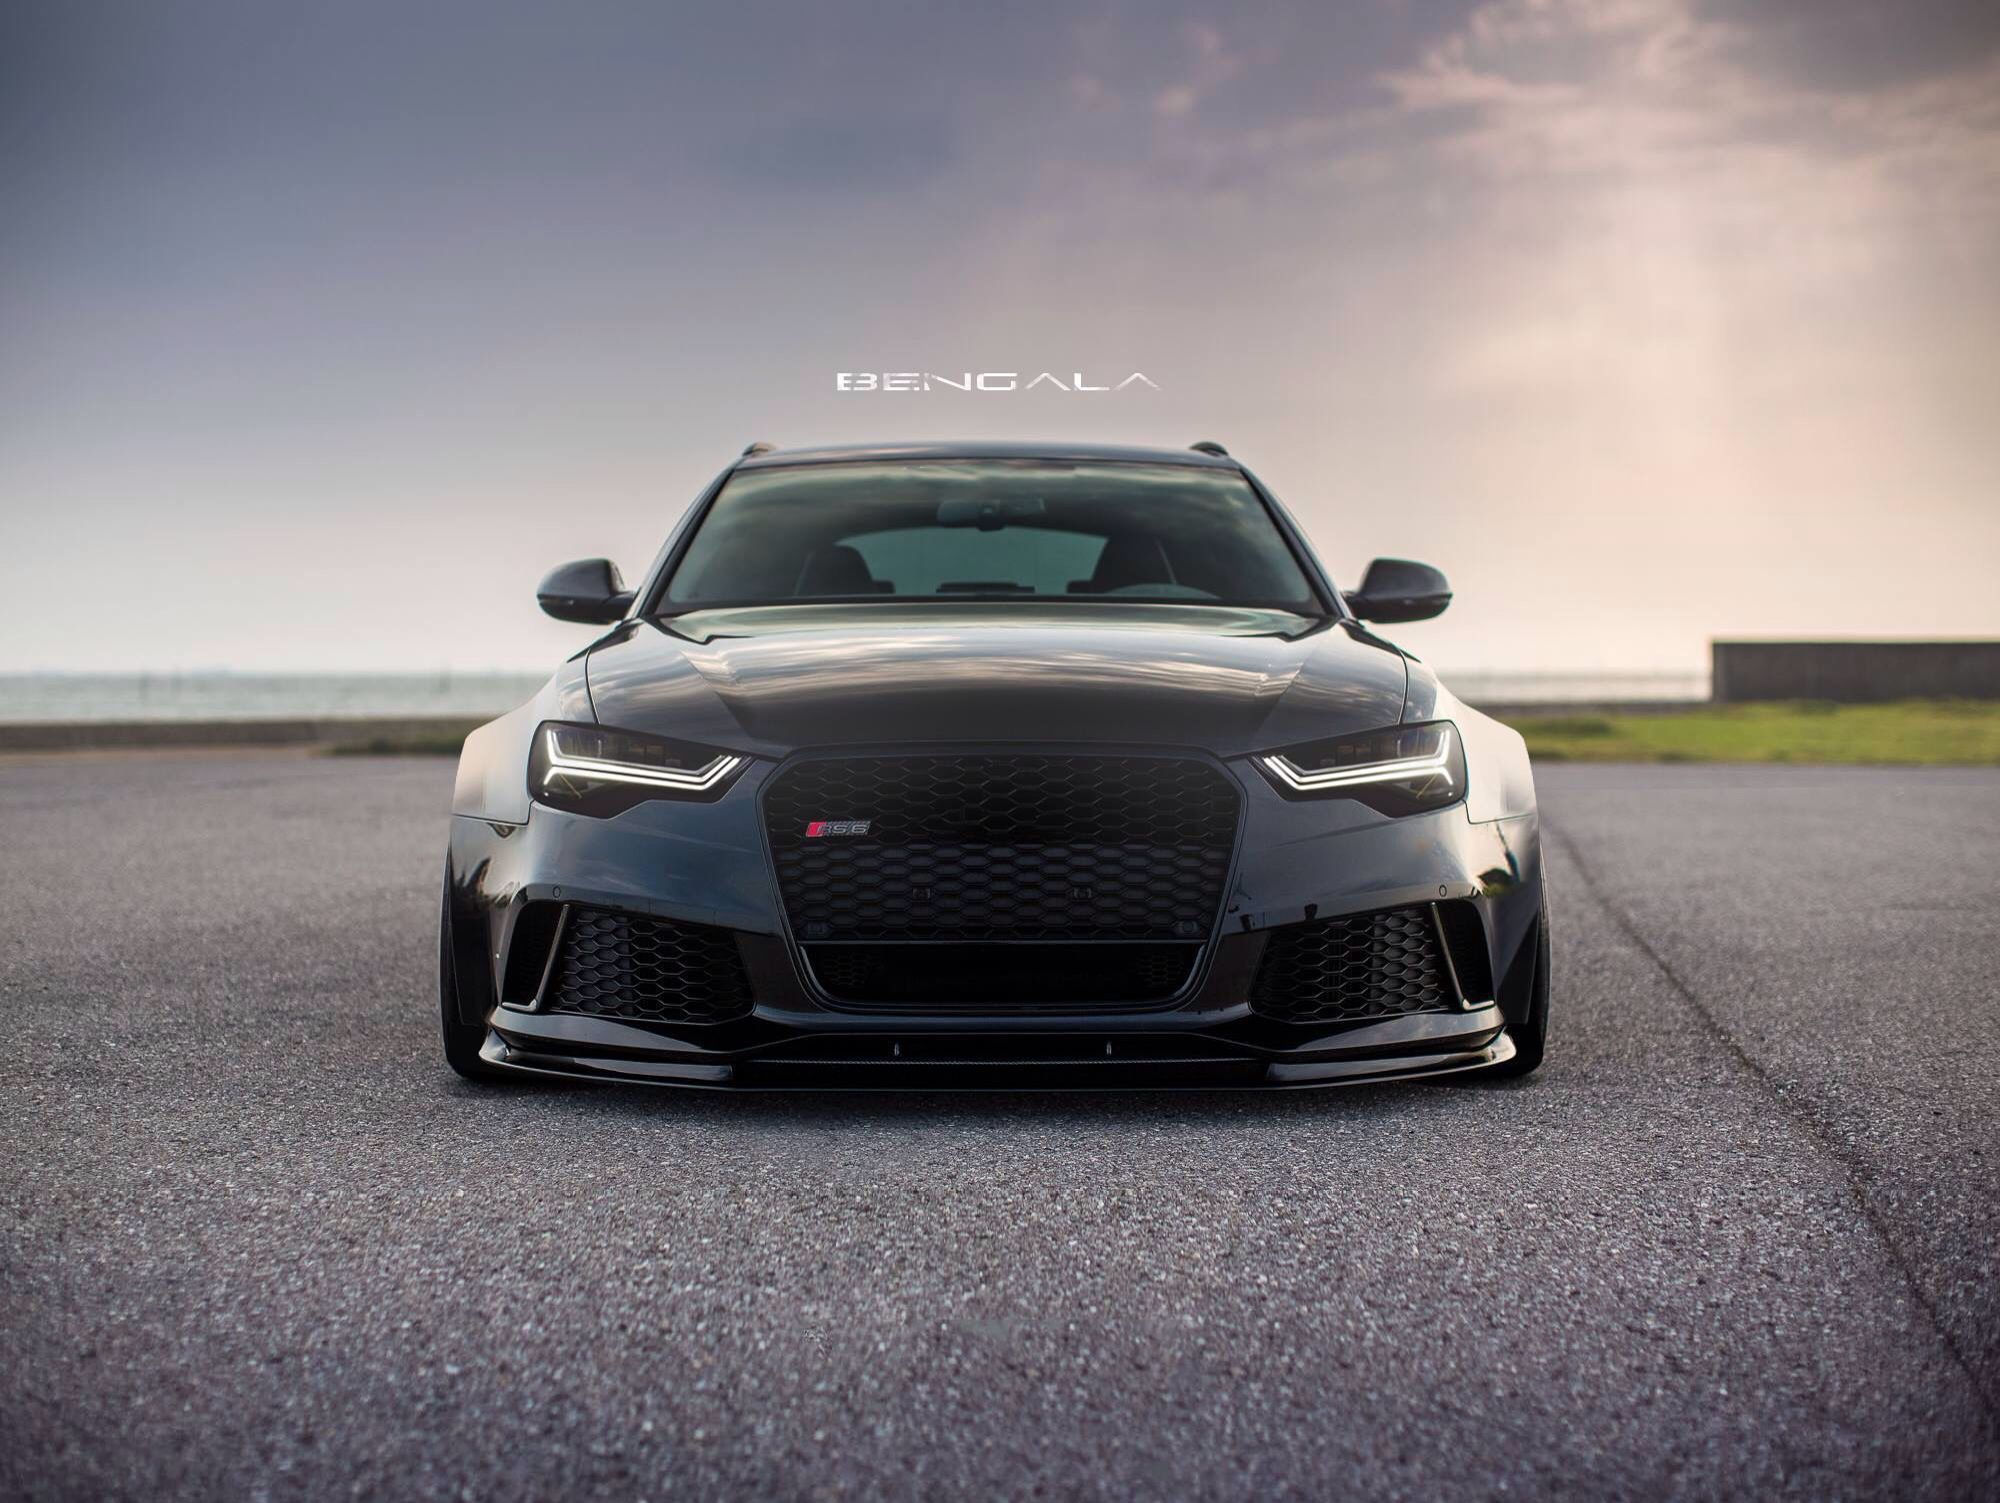 Wide body RS6 Bengala | Vehicles: Cars | Pinterest | Vehicle and Cars